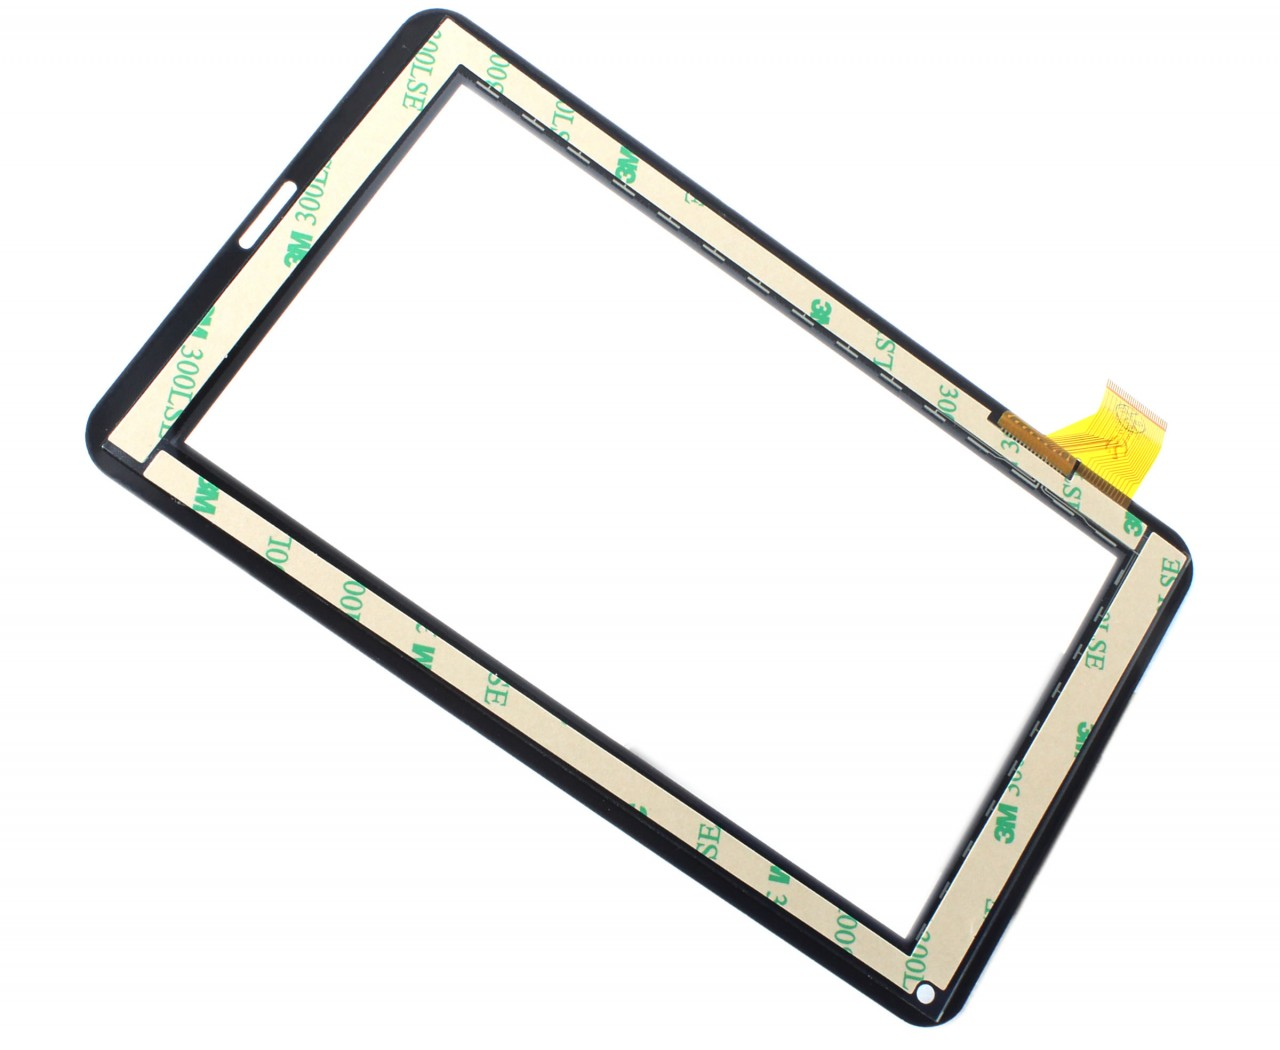 Touchscreen Digitizer Serioux S746 S746TAB Geam Sticla Tableta imagine powerlaptop.ro 2021